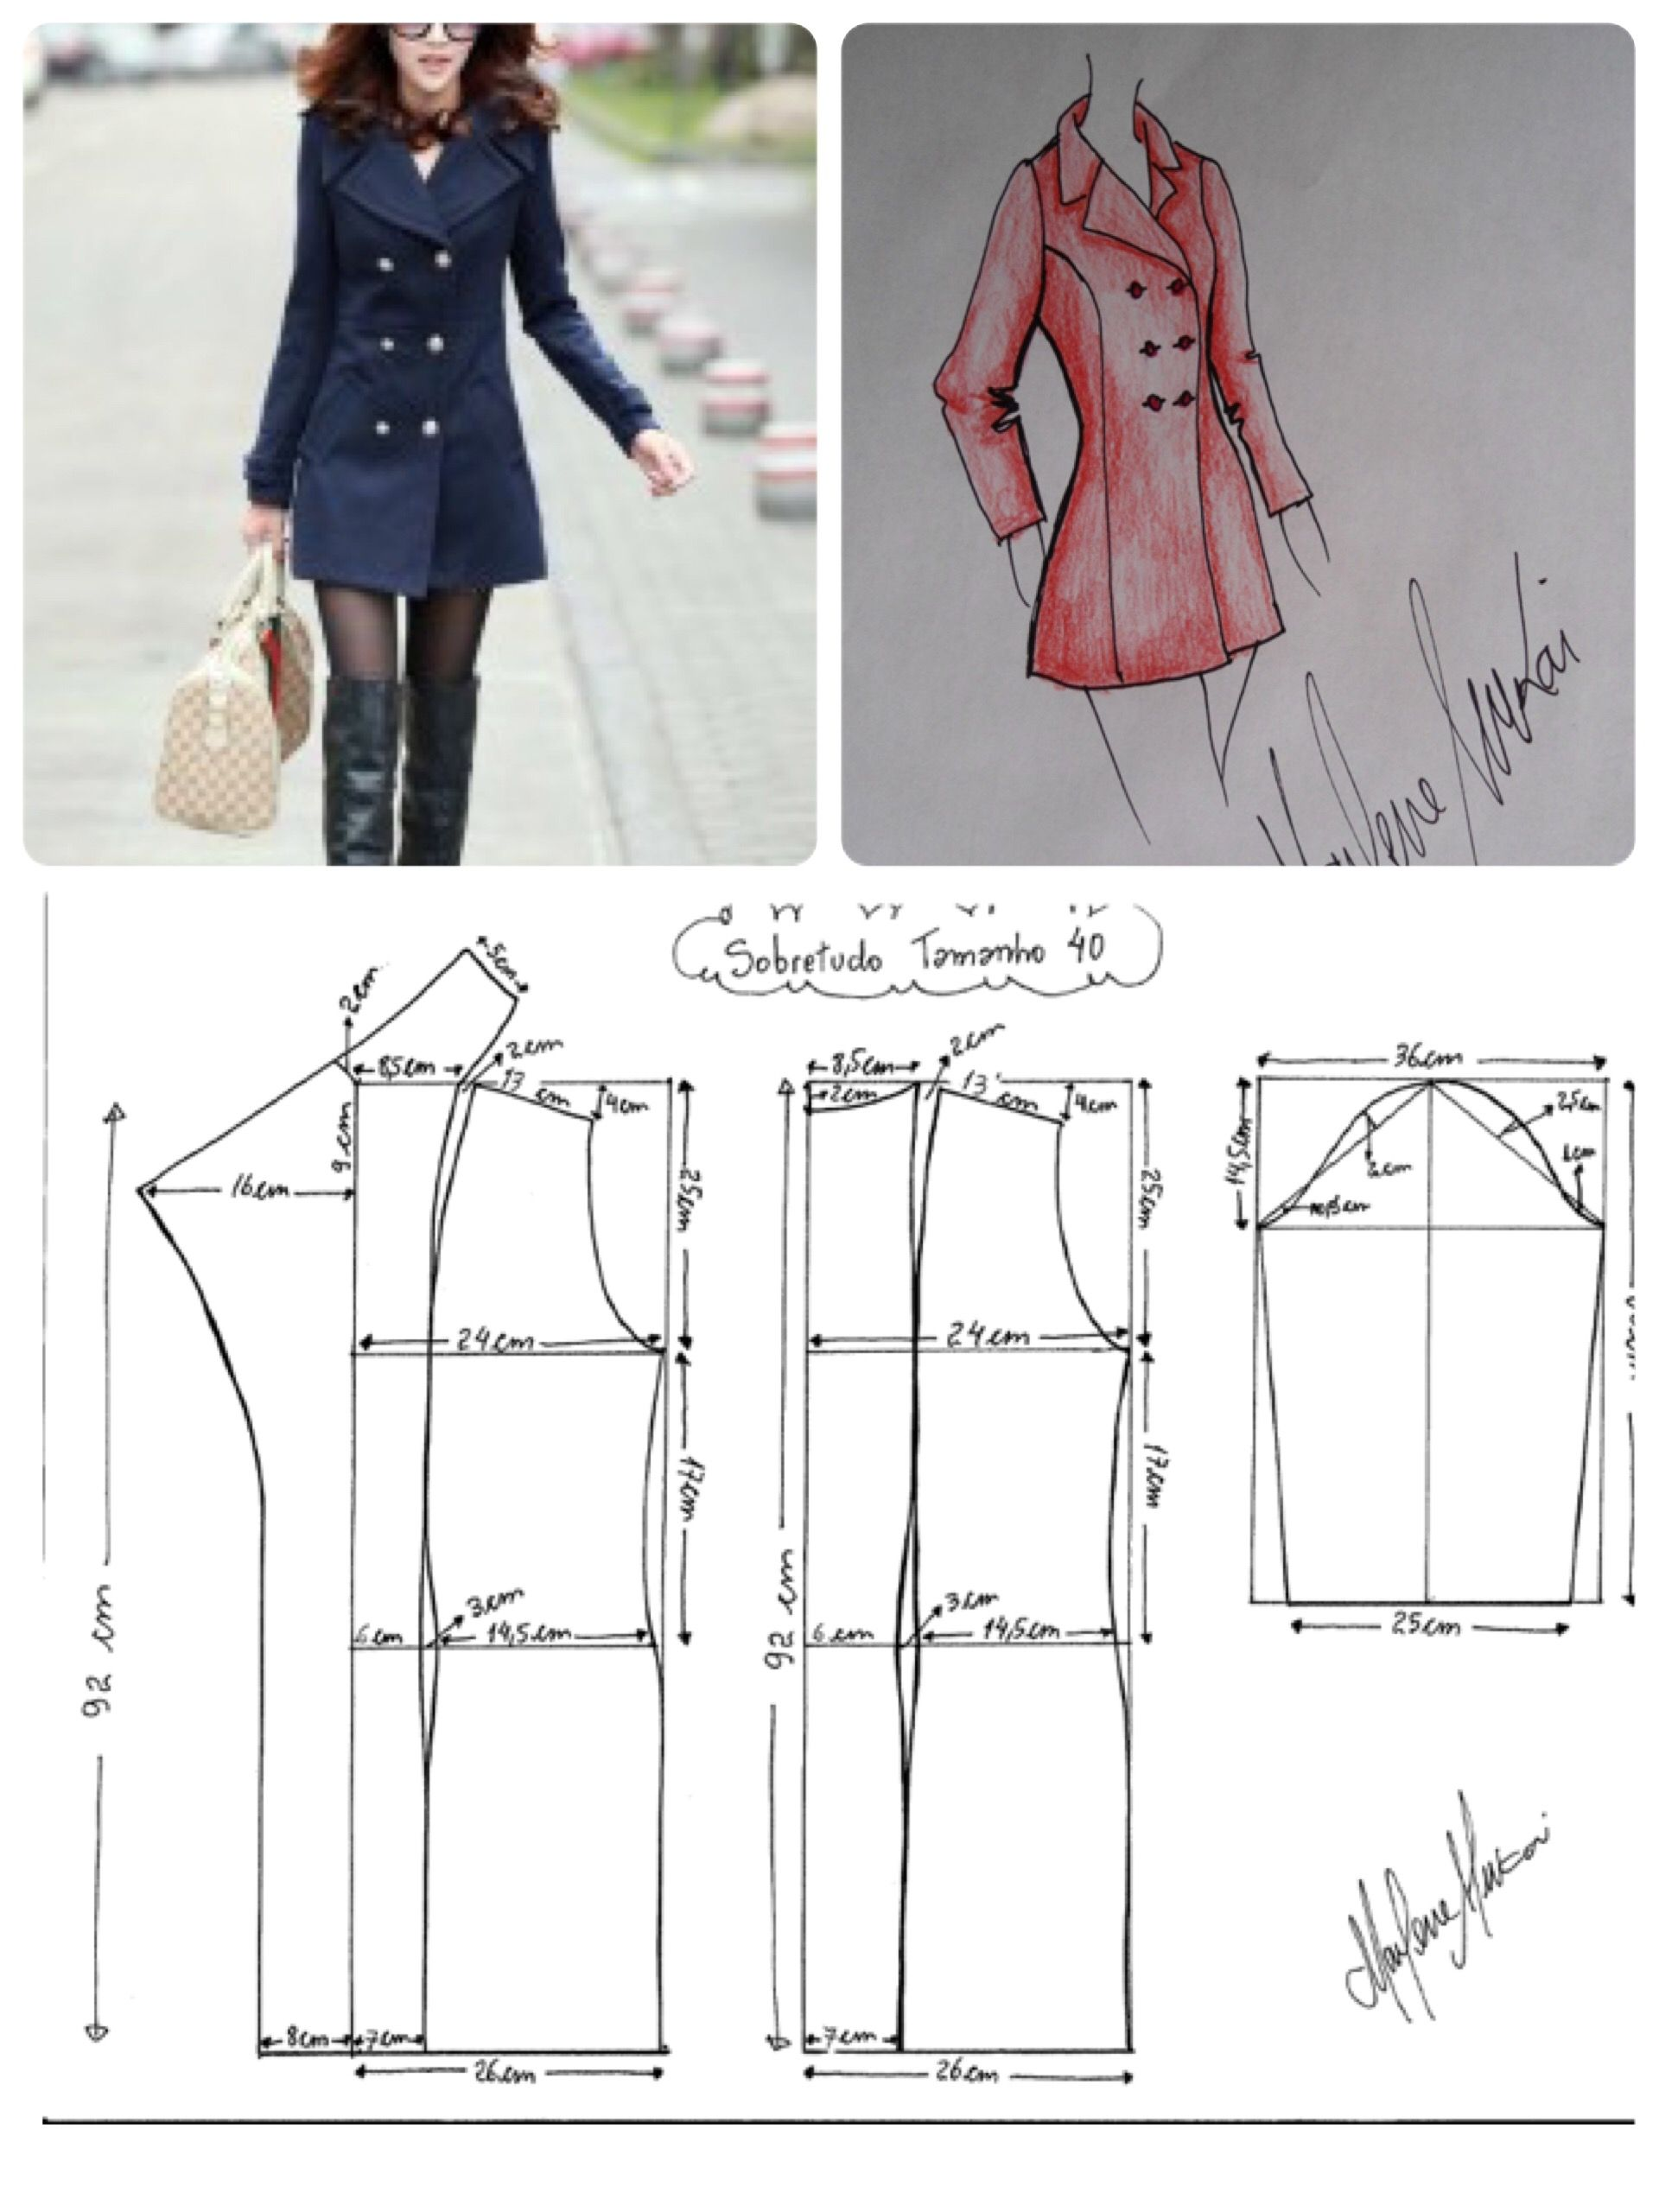 Trench talle 40 | Costura/Sewing | Pinterest | Costura, Molde y Patrones